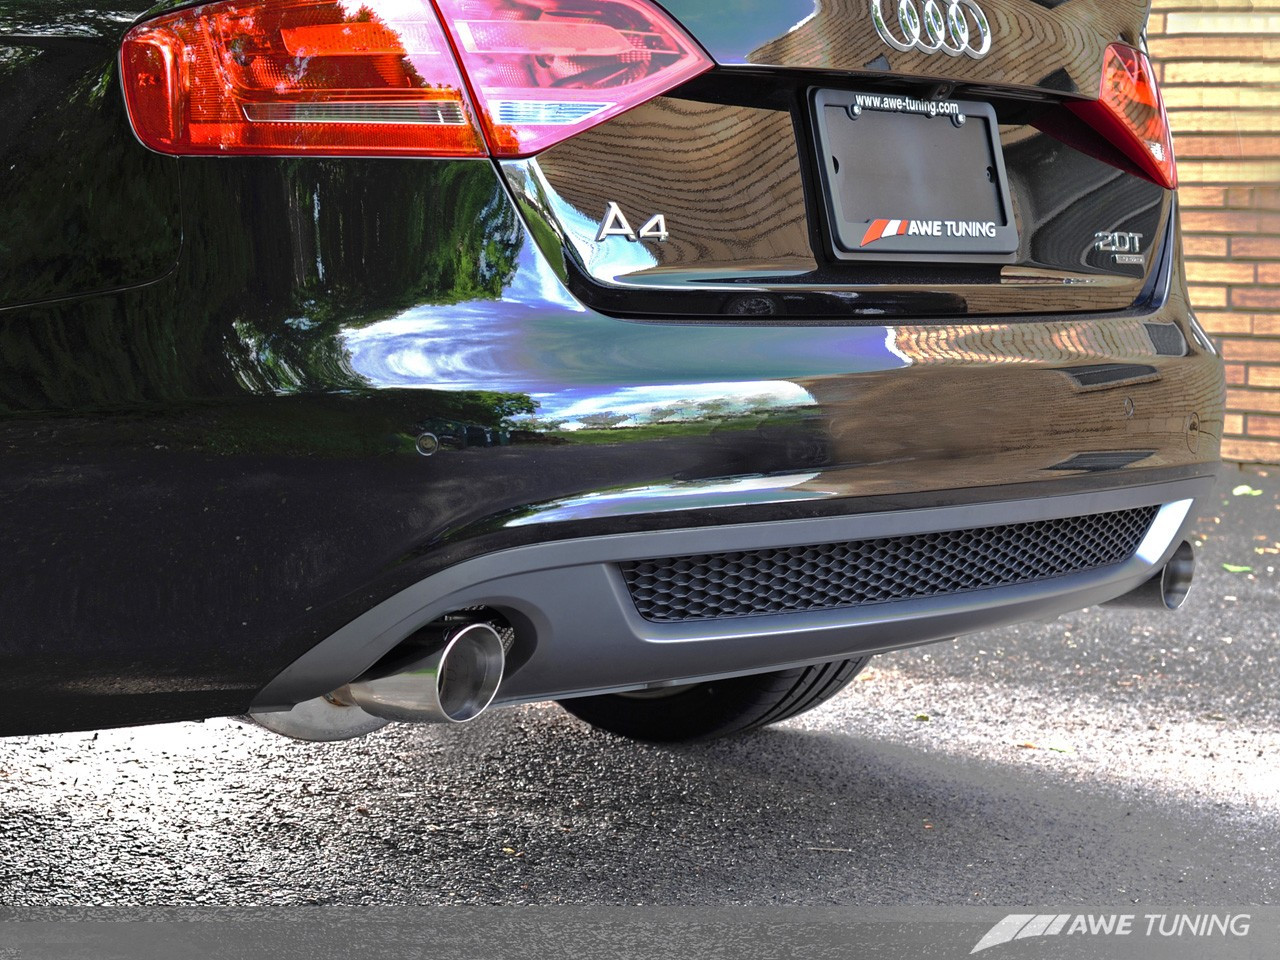 AWE Tuning A4 B8.5 2.0TFSI Touring Edition Exhaust - Dual Tailpipes